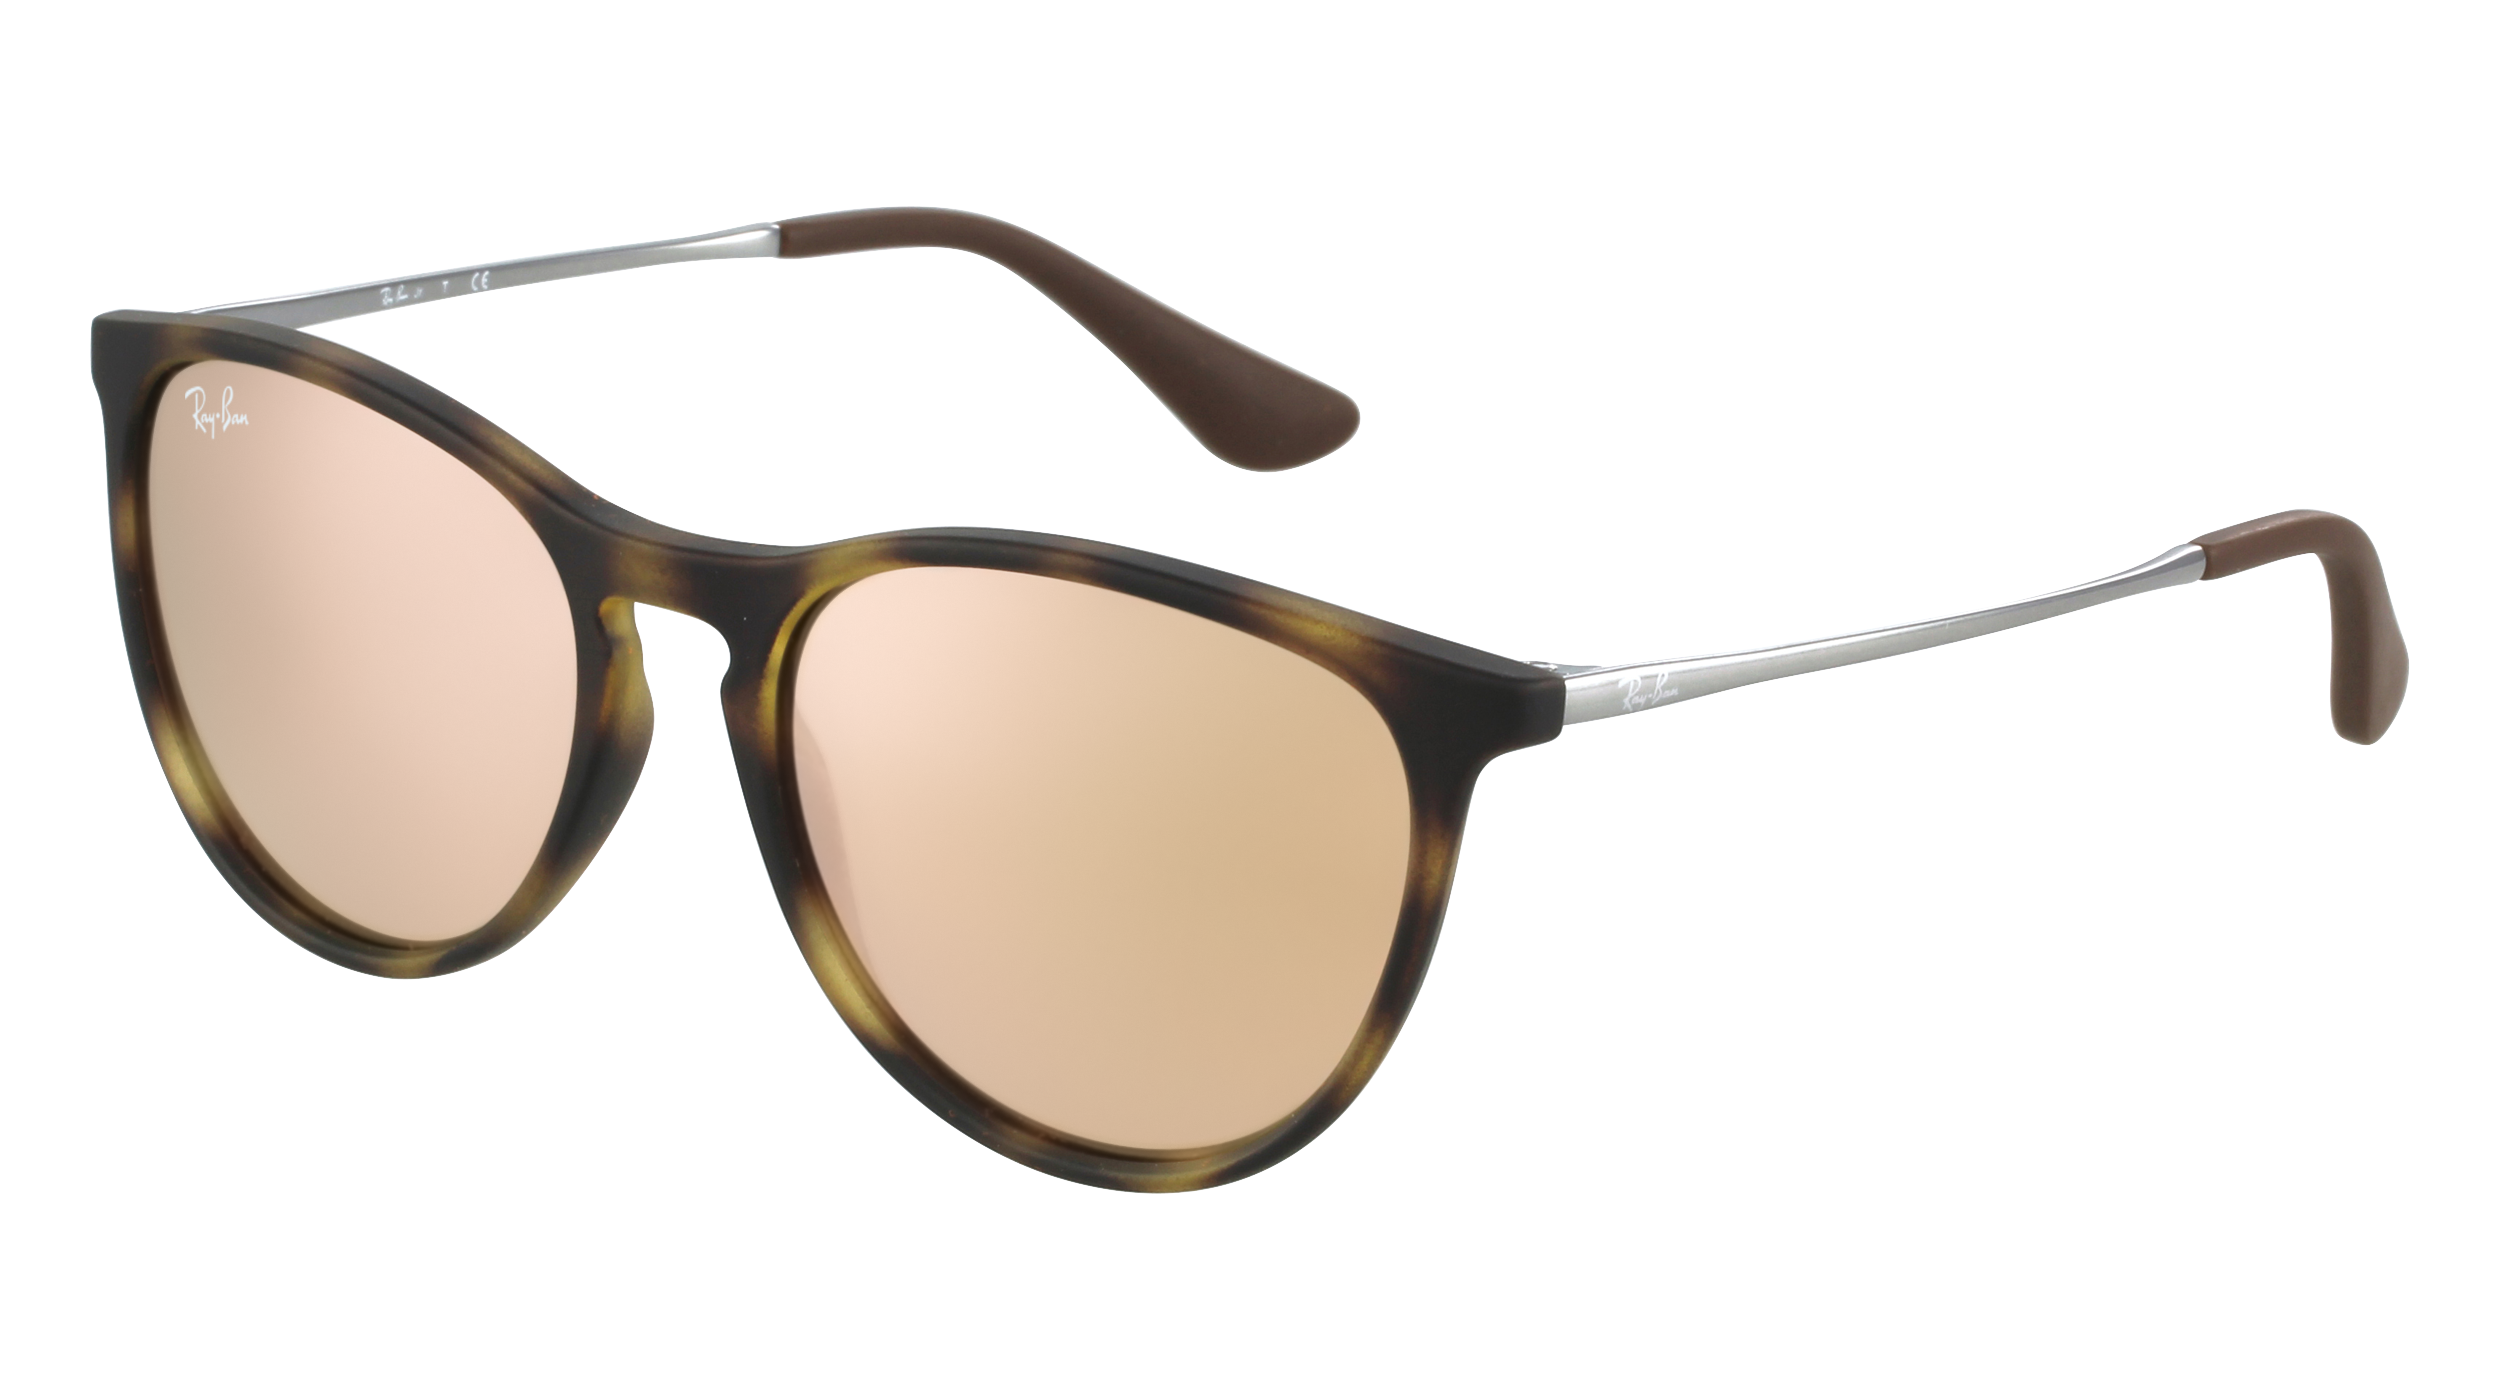 Ray-Ban RJ9060S-S-70062Y-50-15-130